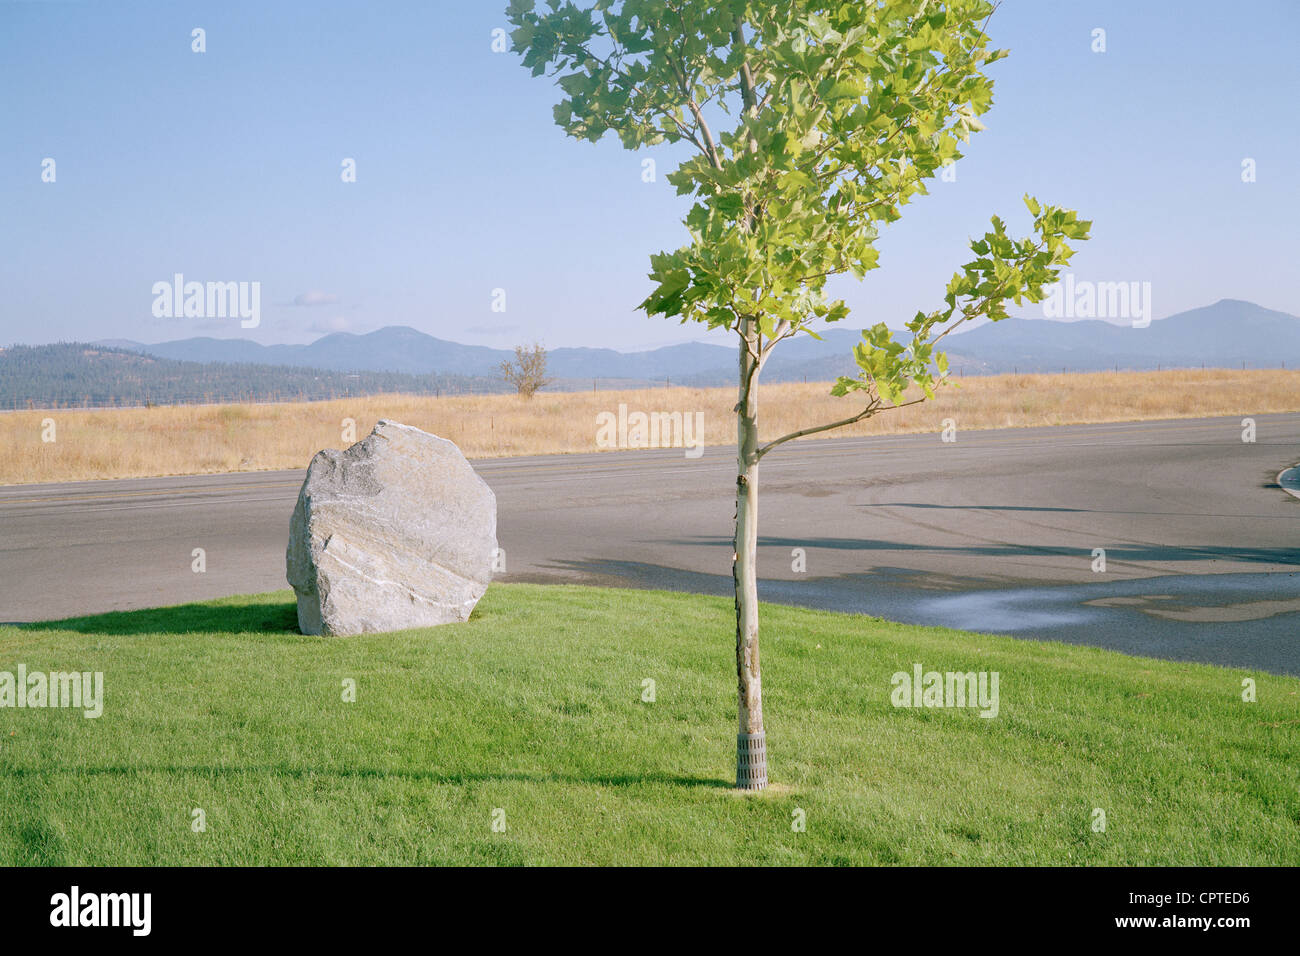 Rock on grass by suburban road - Stock Image